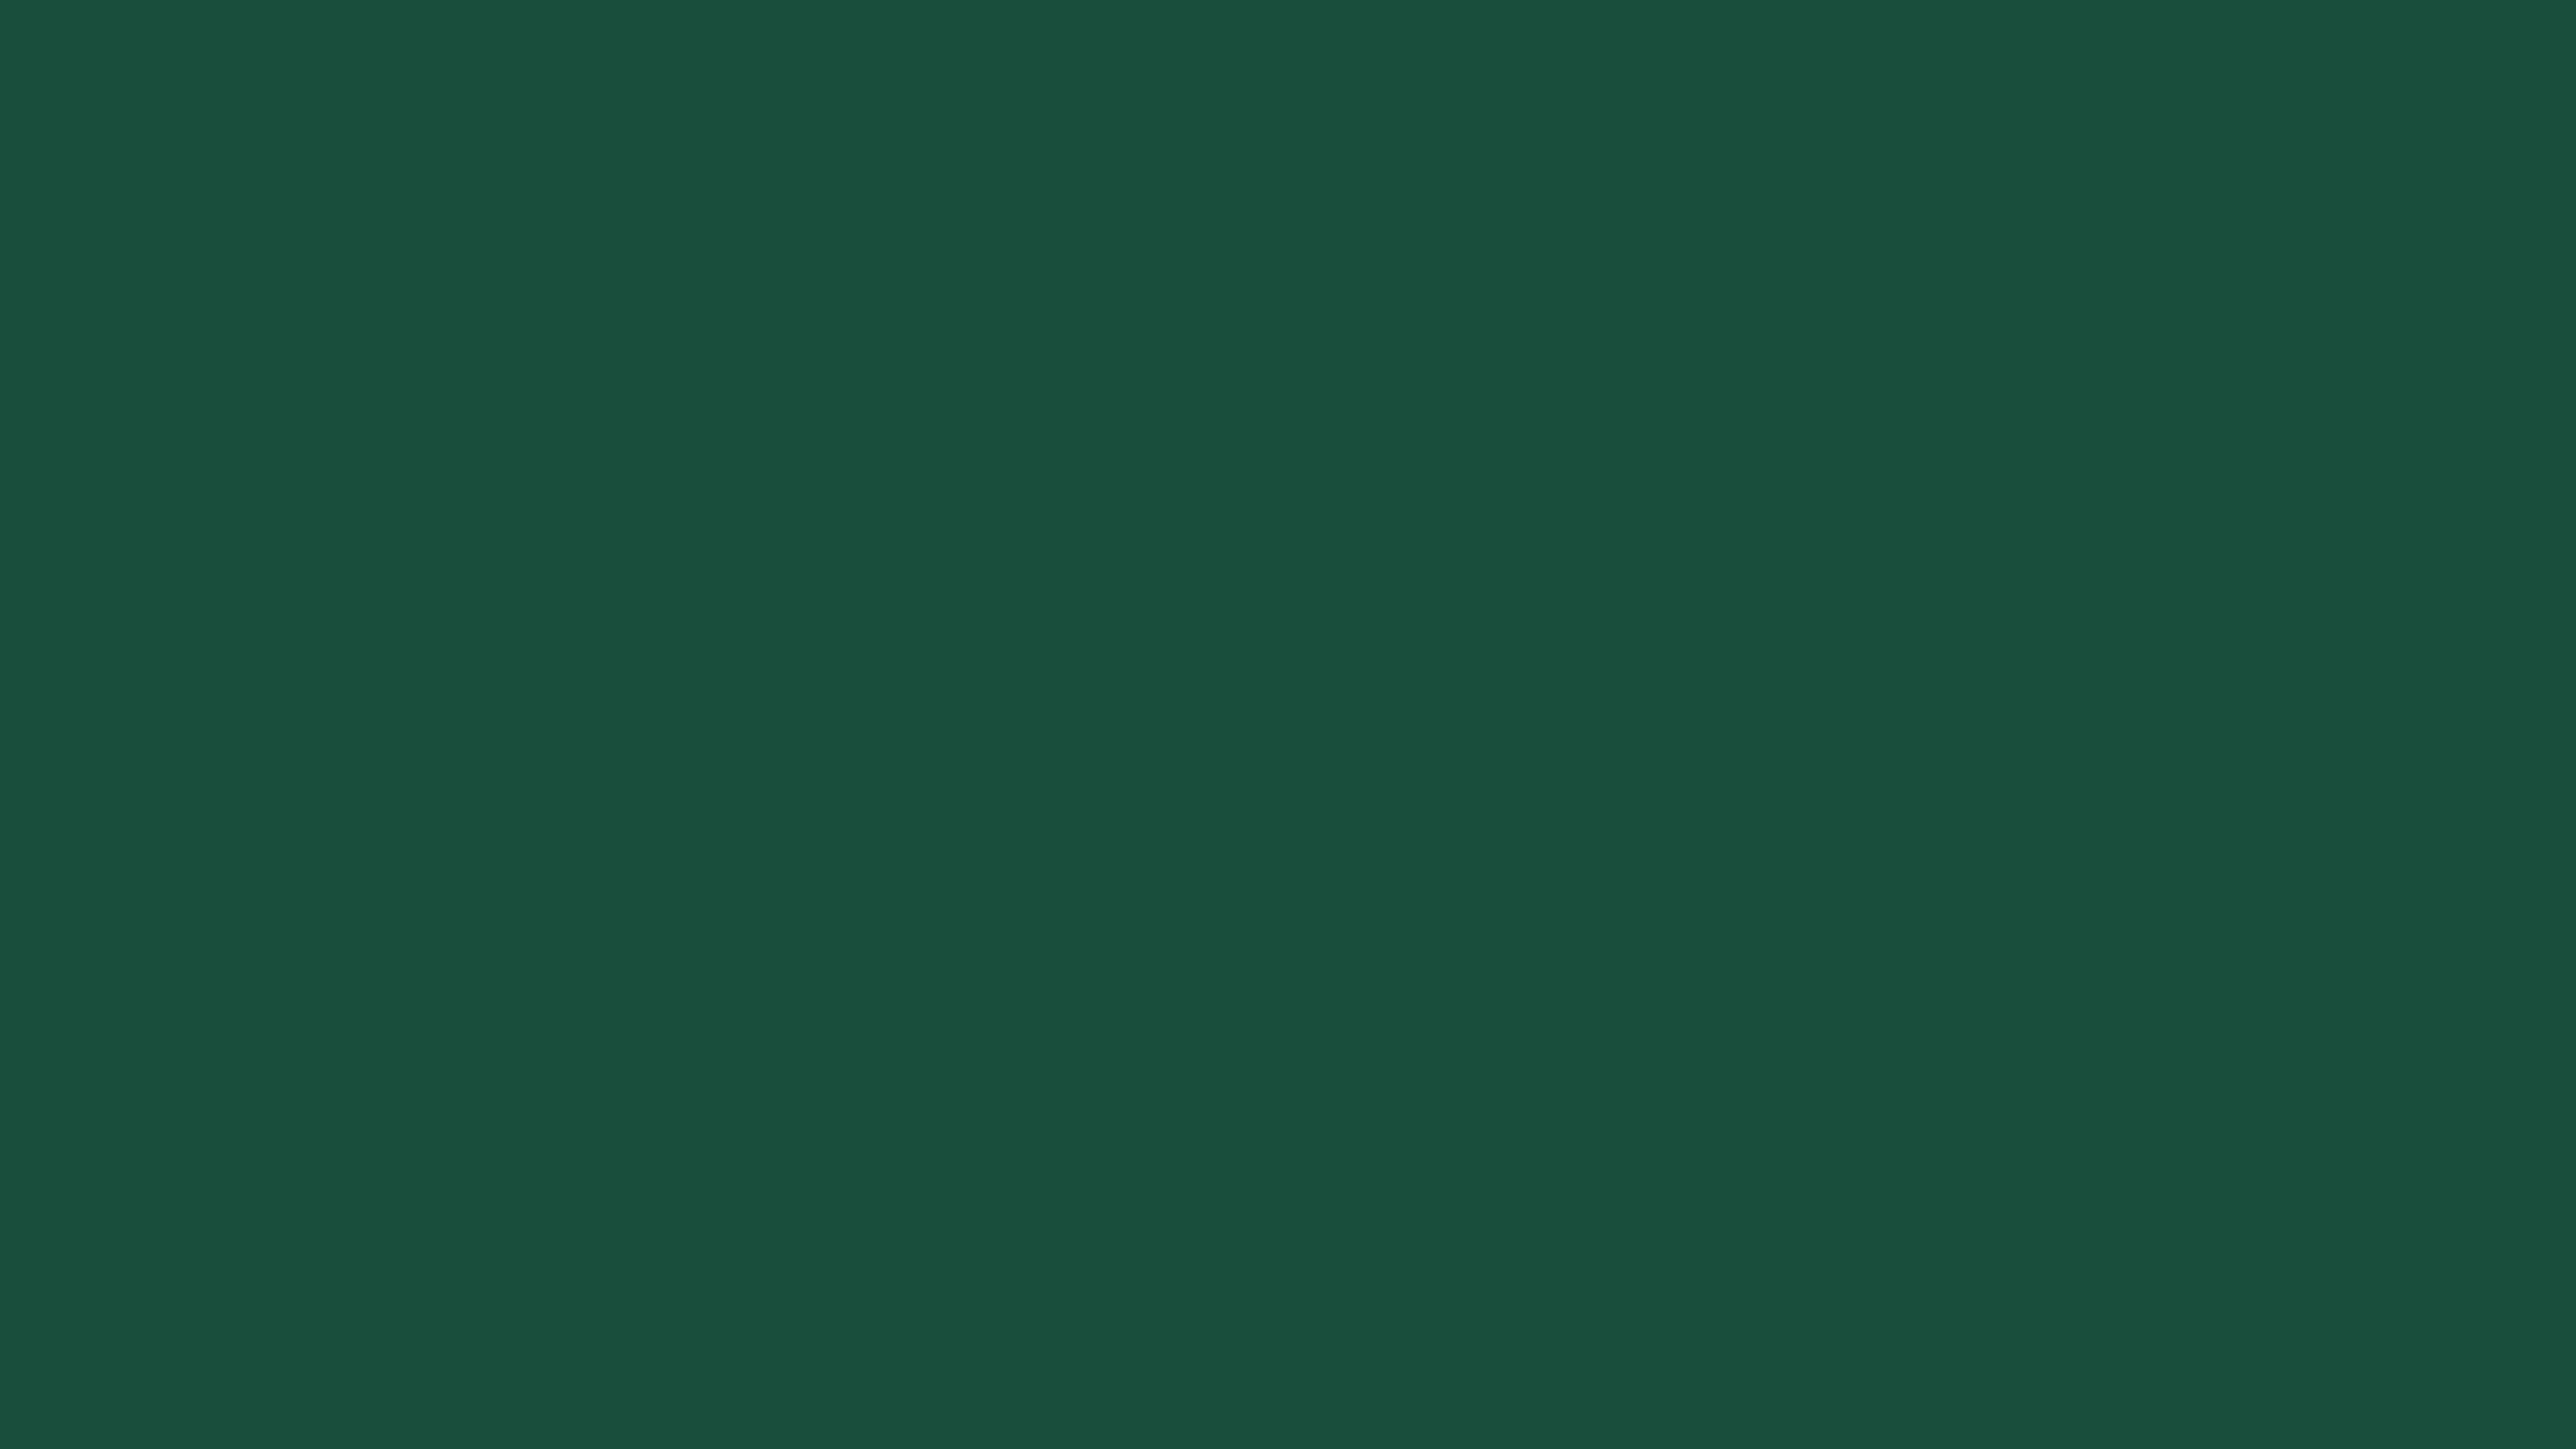 4096x2304 English Green Solid Color Background